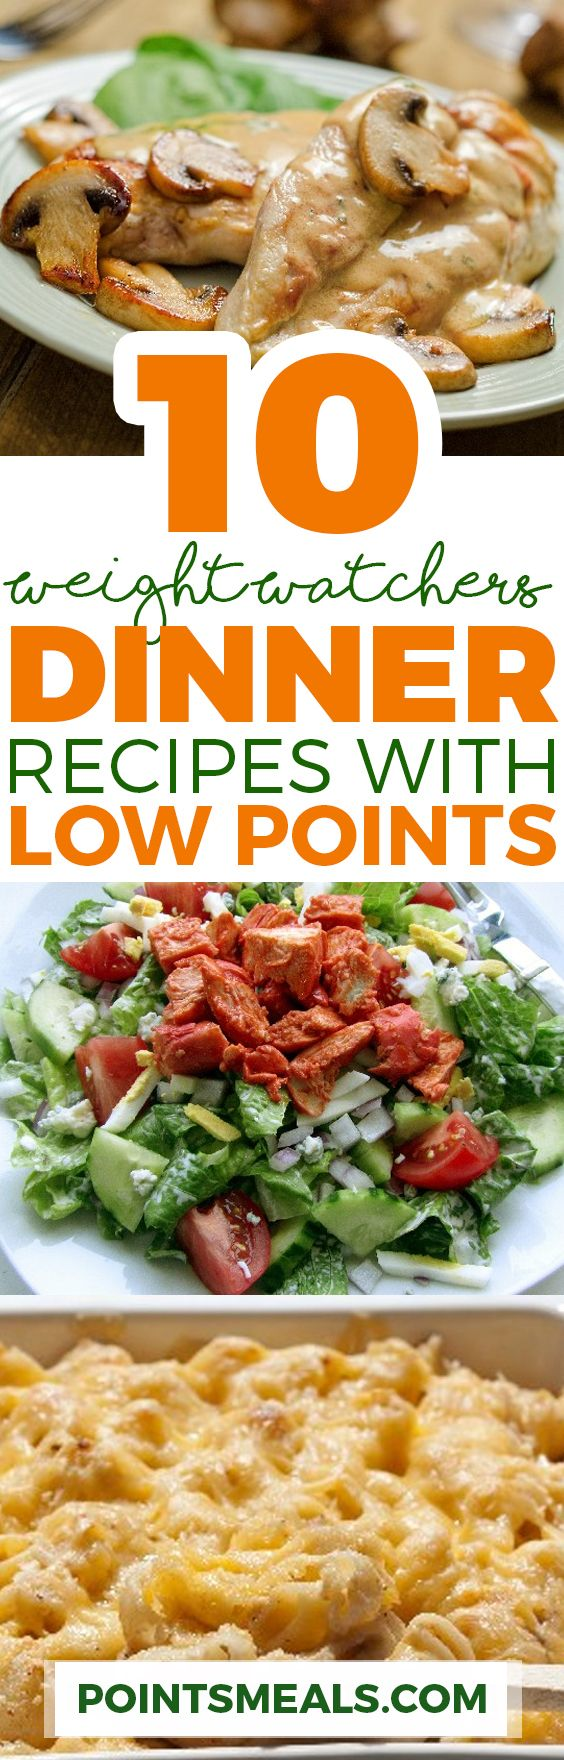 TOP 10 DELICIOUS WEIGHT WATCHERS DINNERS WITH LOW POINTS (WEIGHT WATCHERS RECIPES)